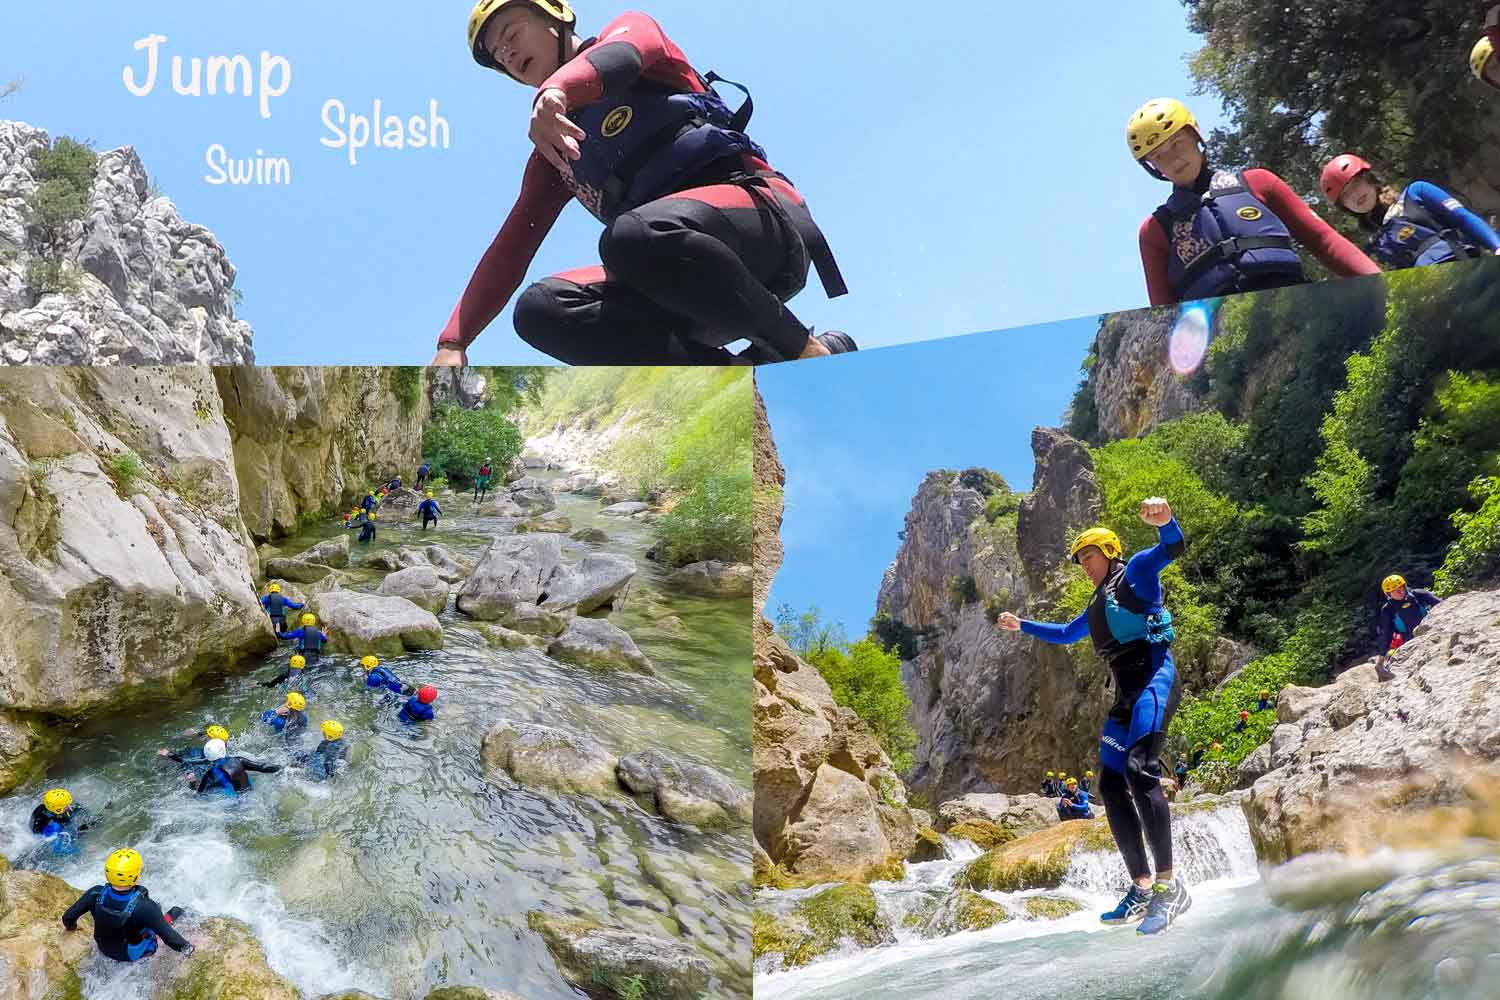 Book onto a canyoning tour this summer in Croatia. Perfect for active families.